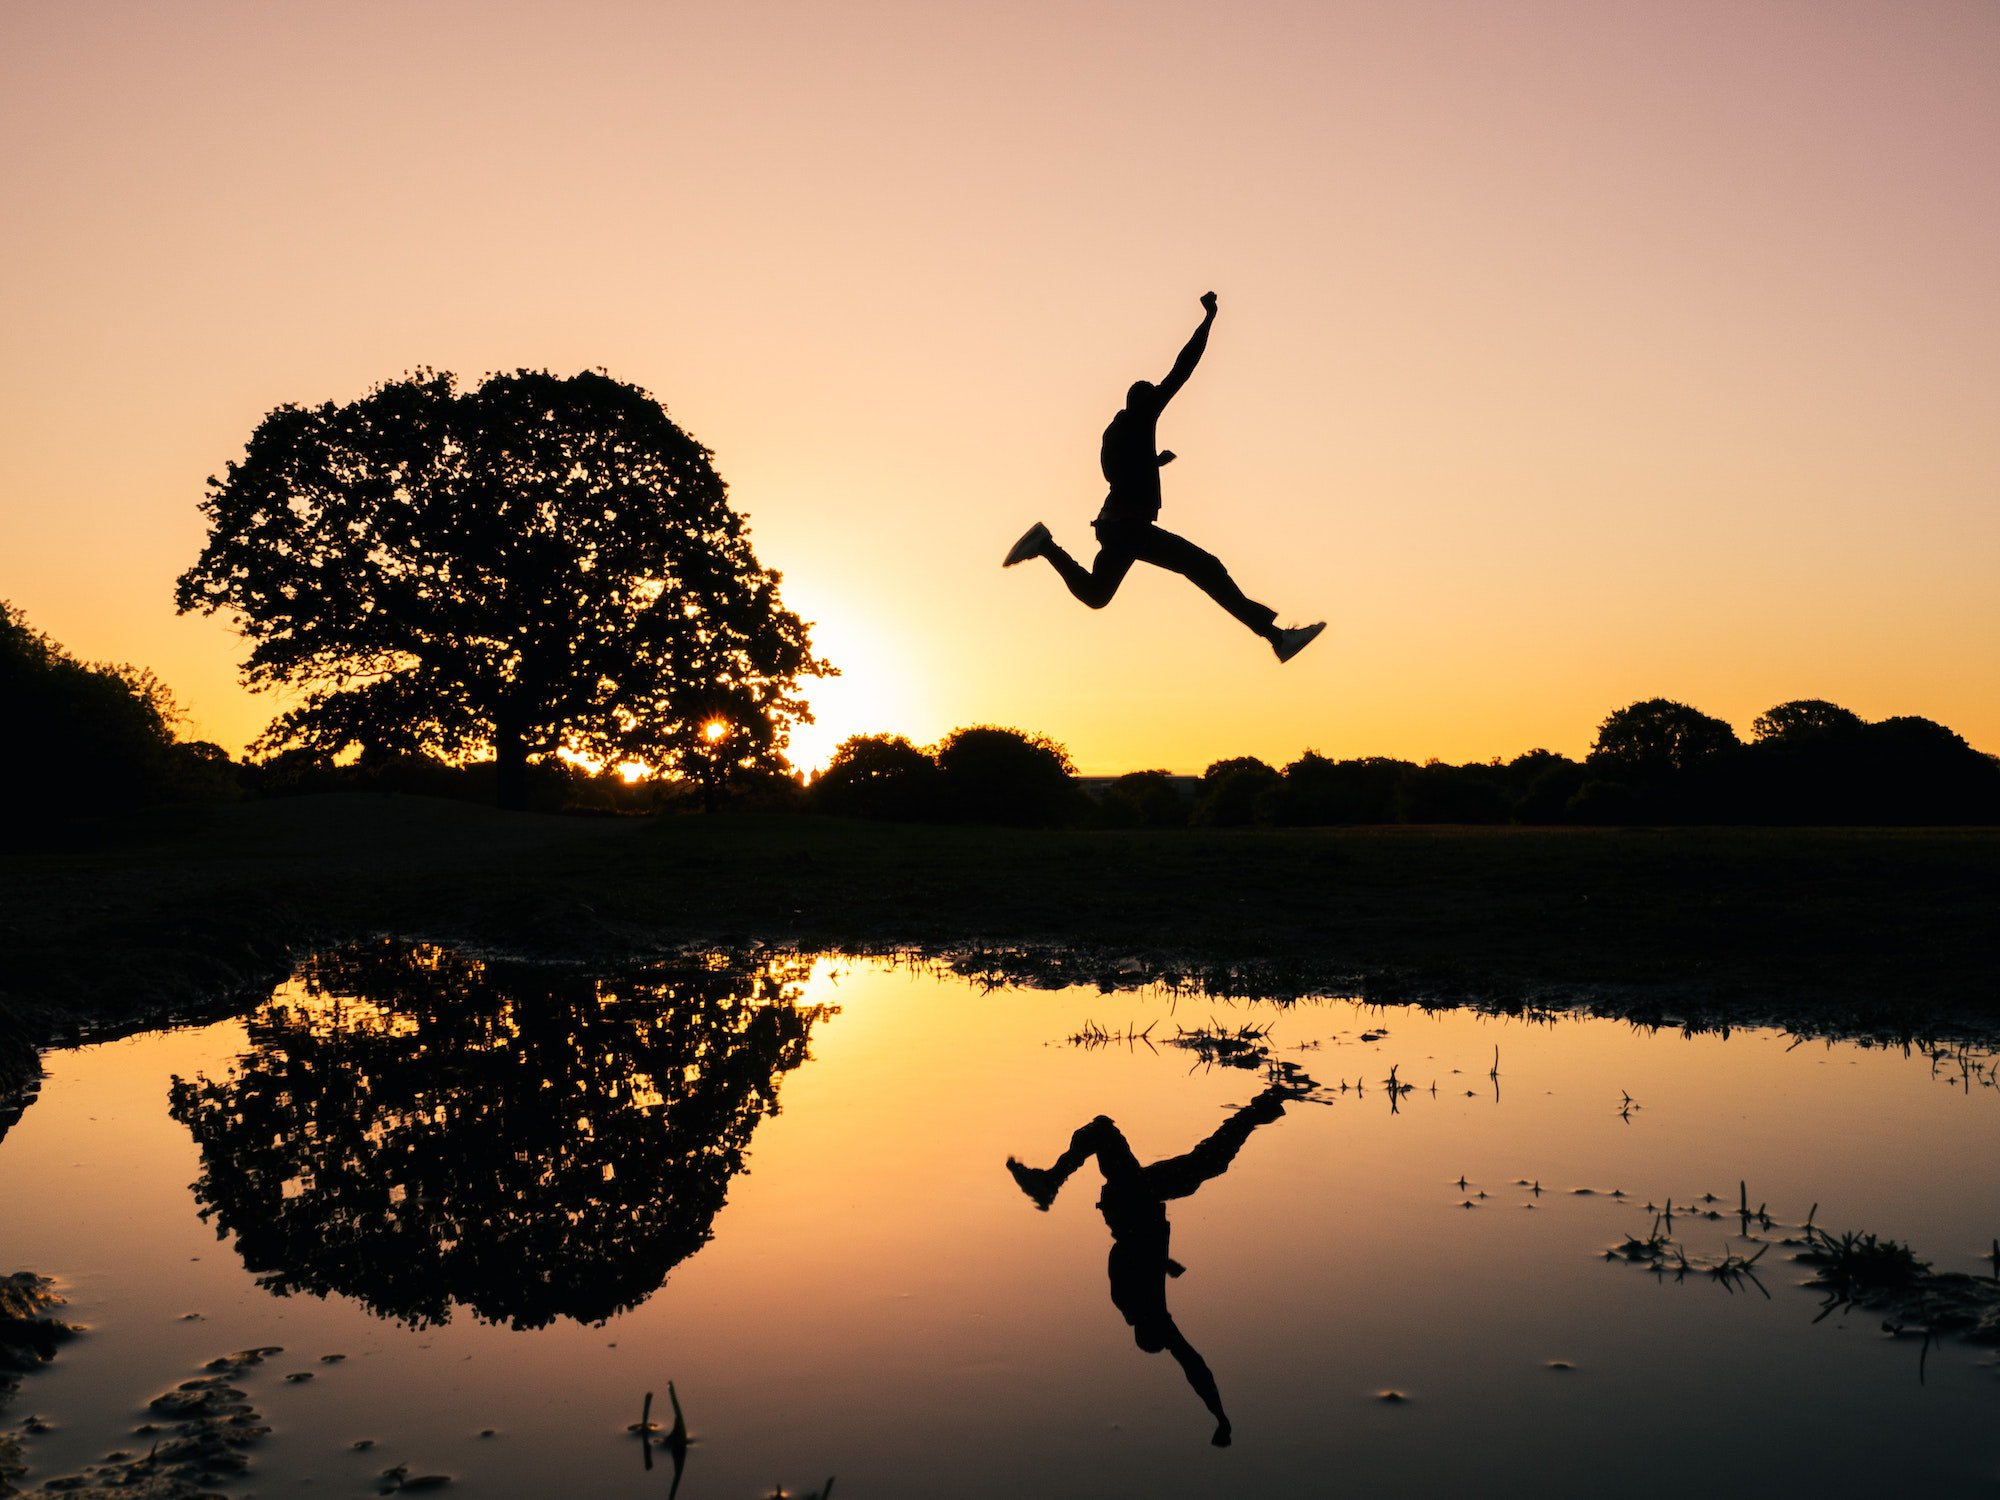 Person leaping during dawn over a lake by a tree consultant management platform